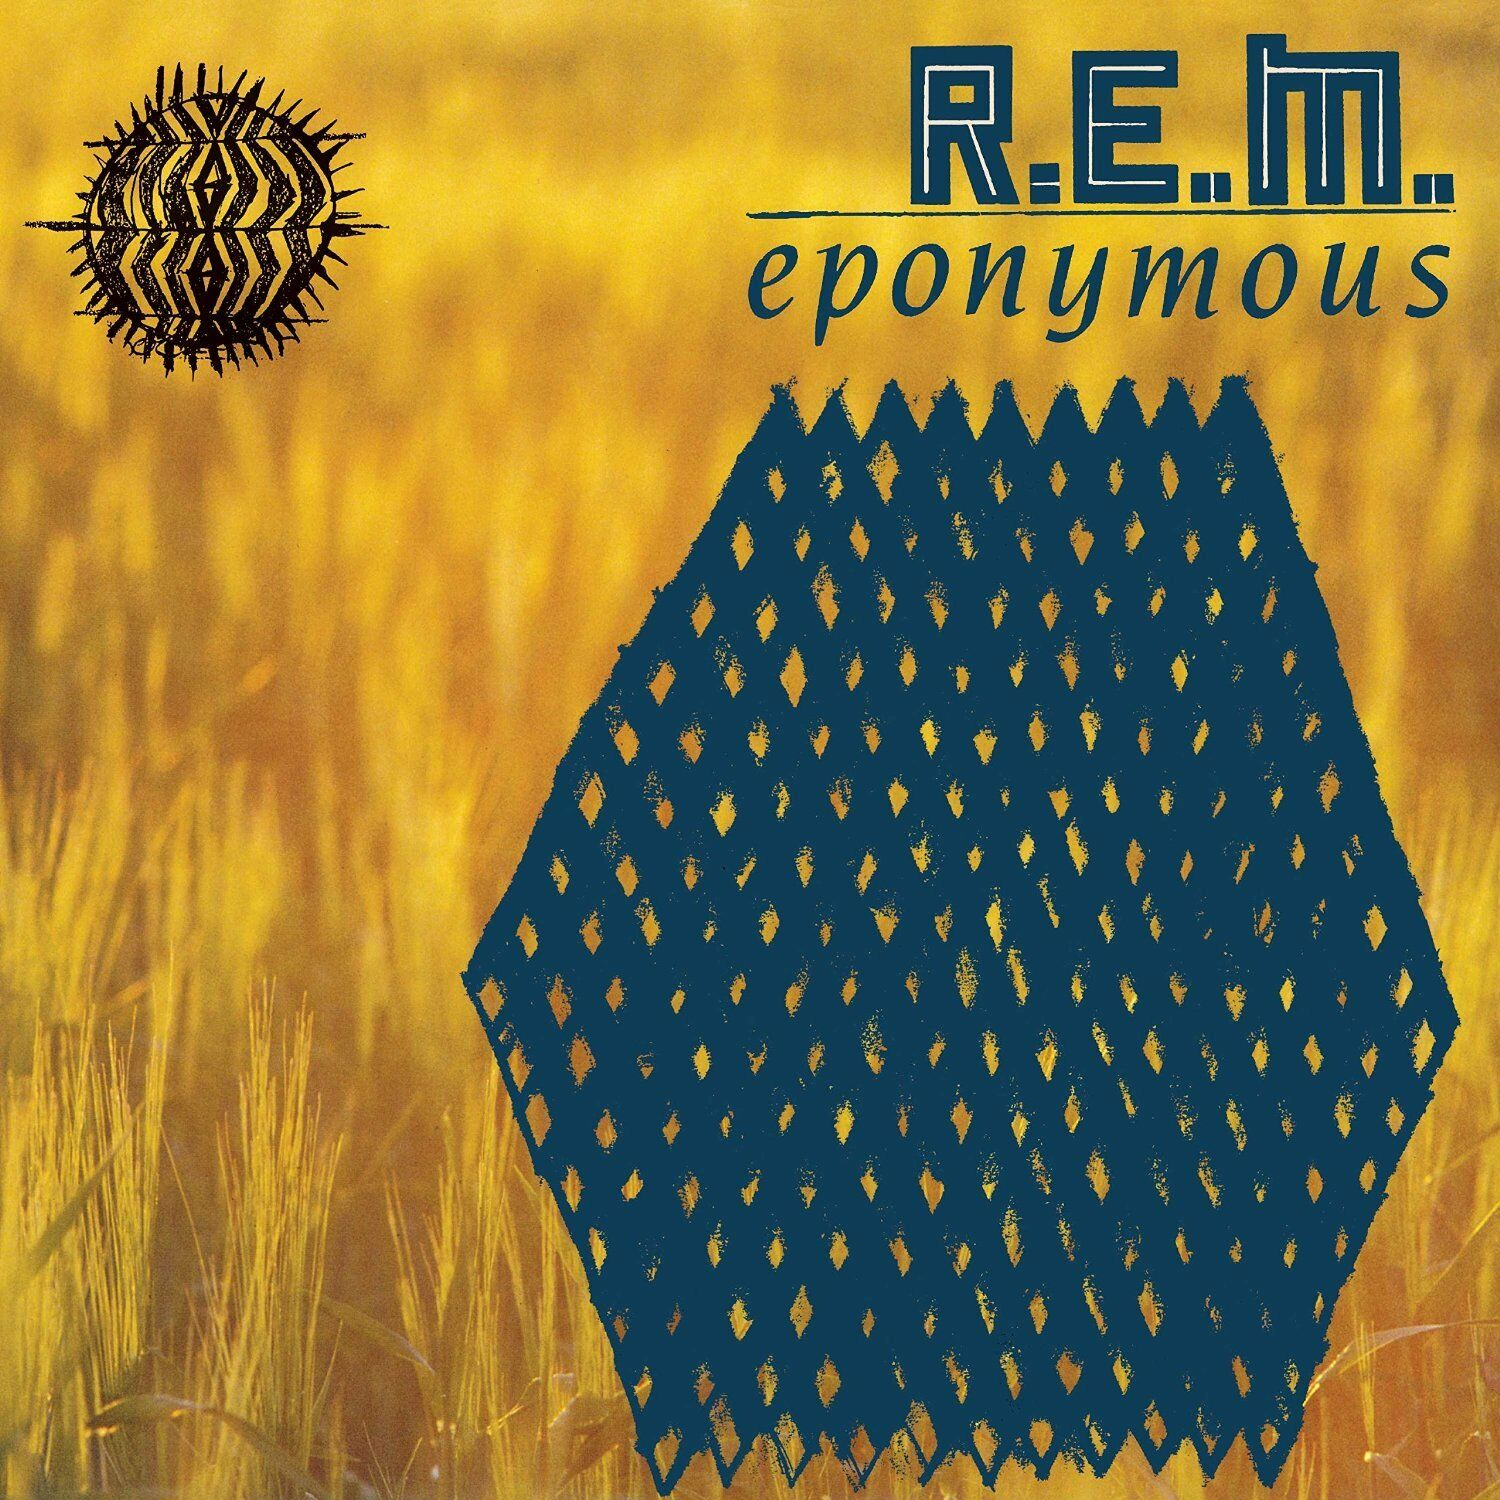 R.E.M. Eponymous GREATEST HITS Best Of 12 Essential Songs REM New Vinyl LP